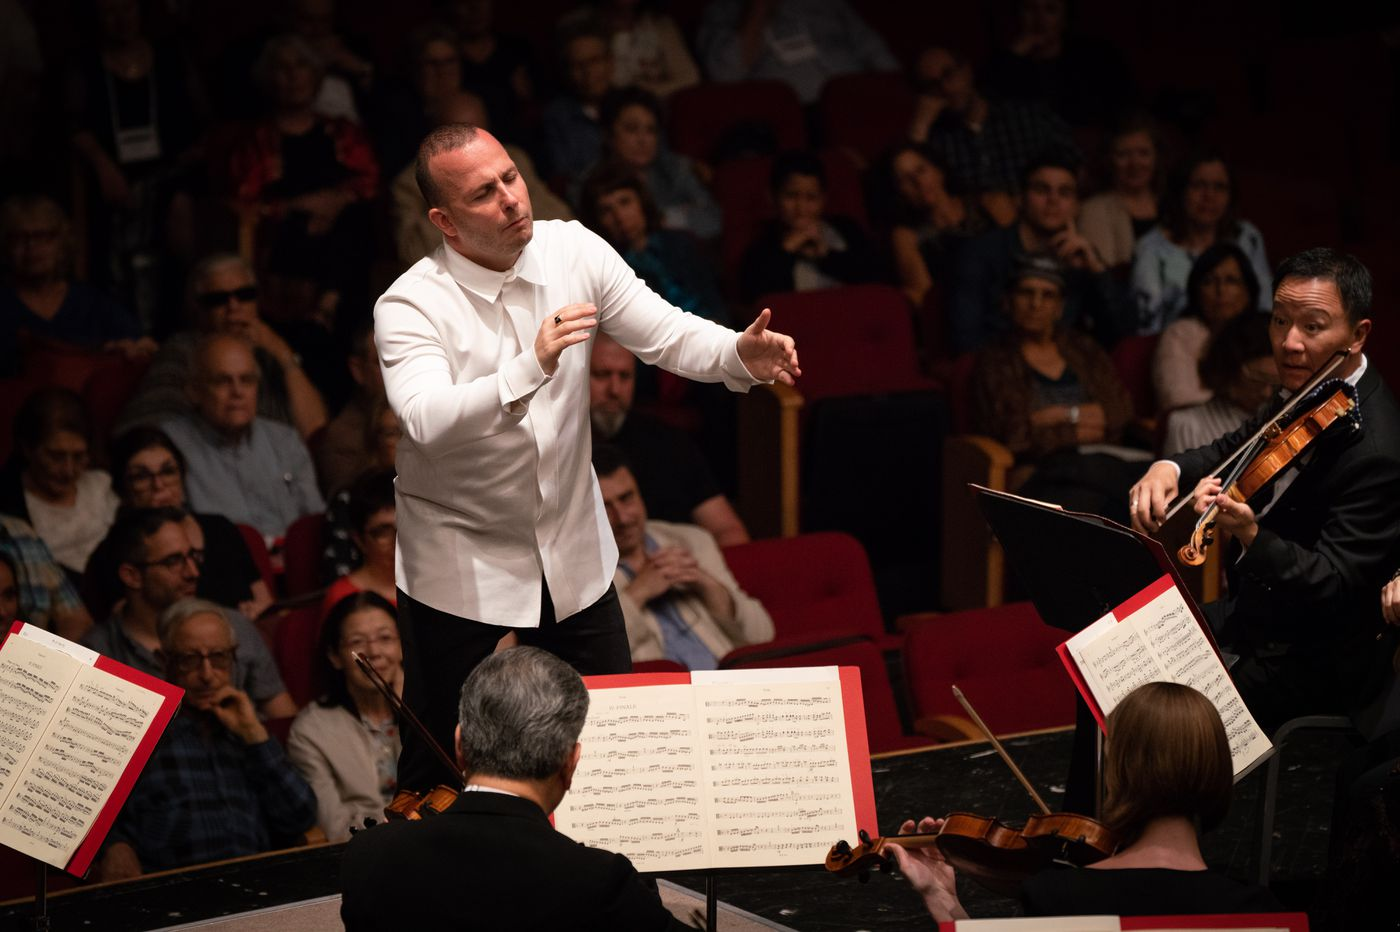 The Philadelphia Orchestra's tour of Europe and Israel is done: What did we learn?